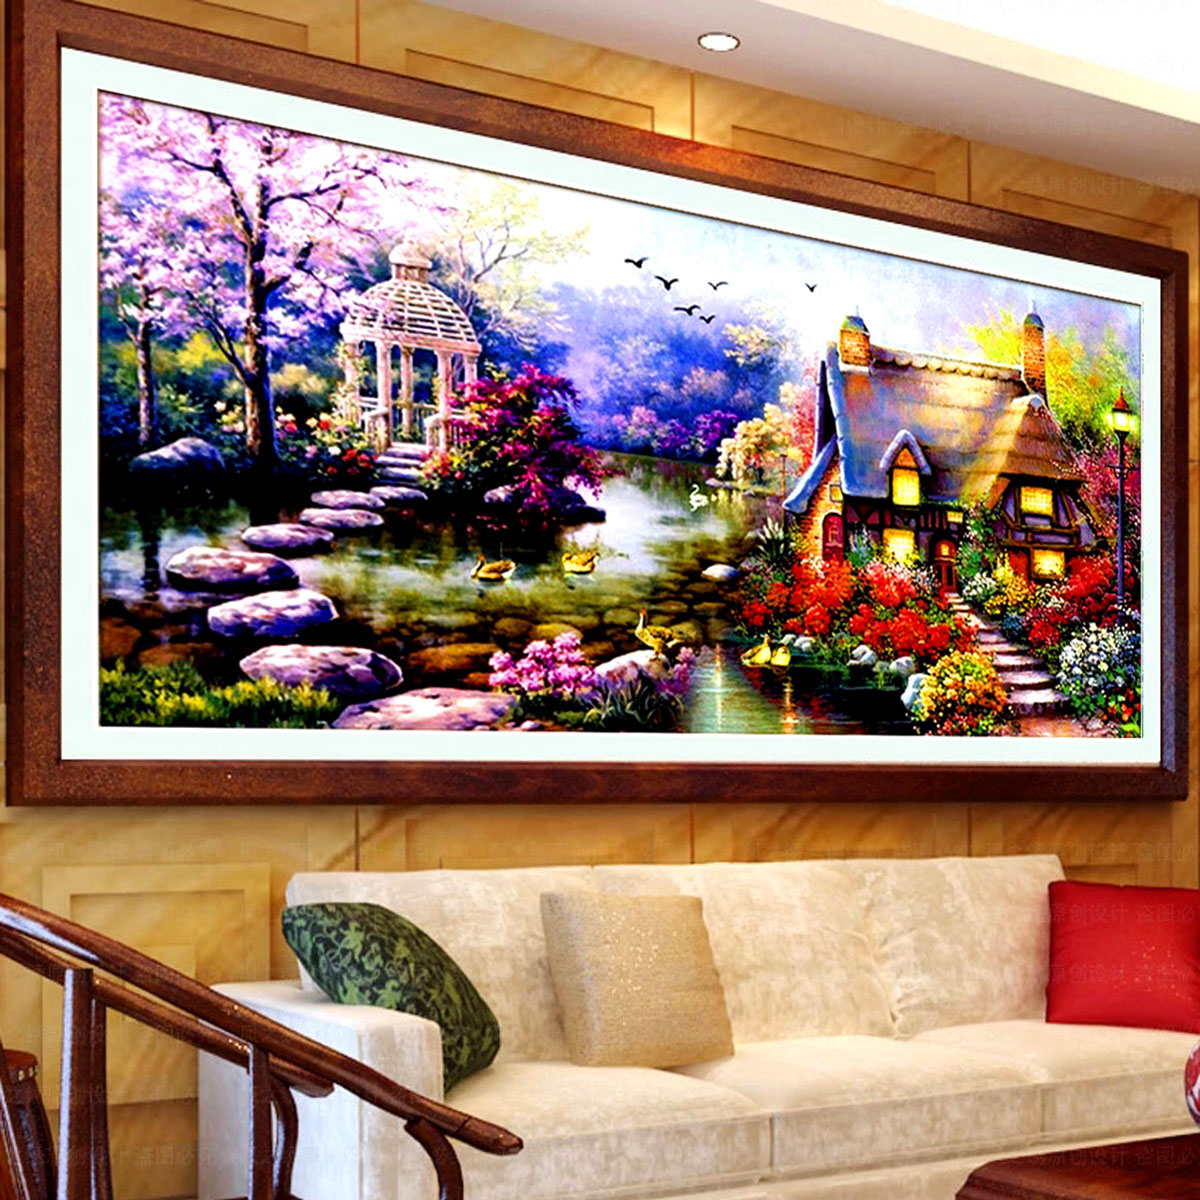 Stitch substantial new living room painting garden cottage garden home landscape painting in europe and america